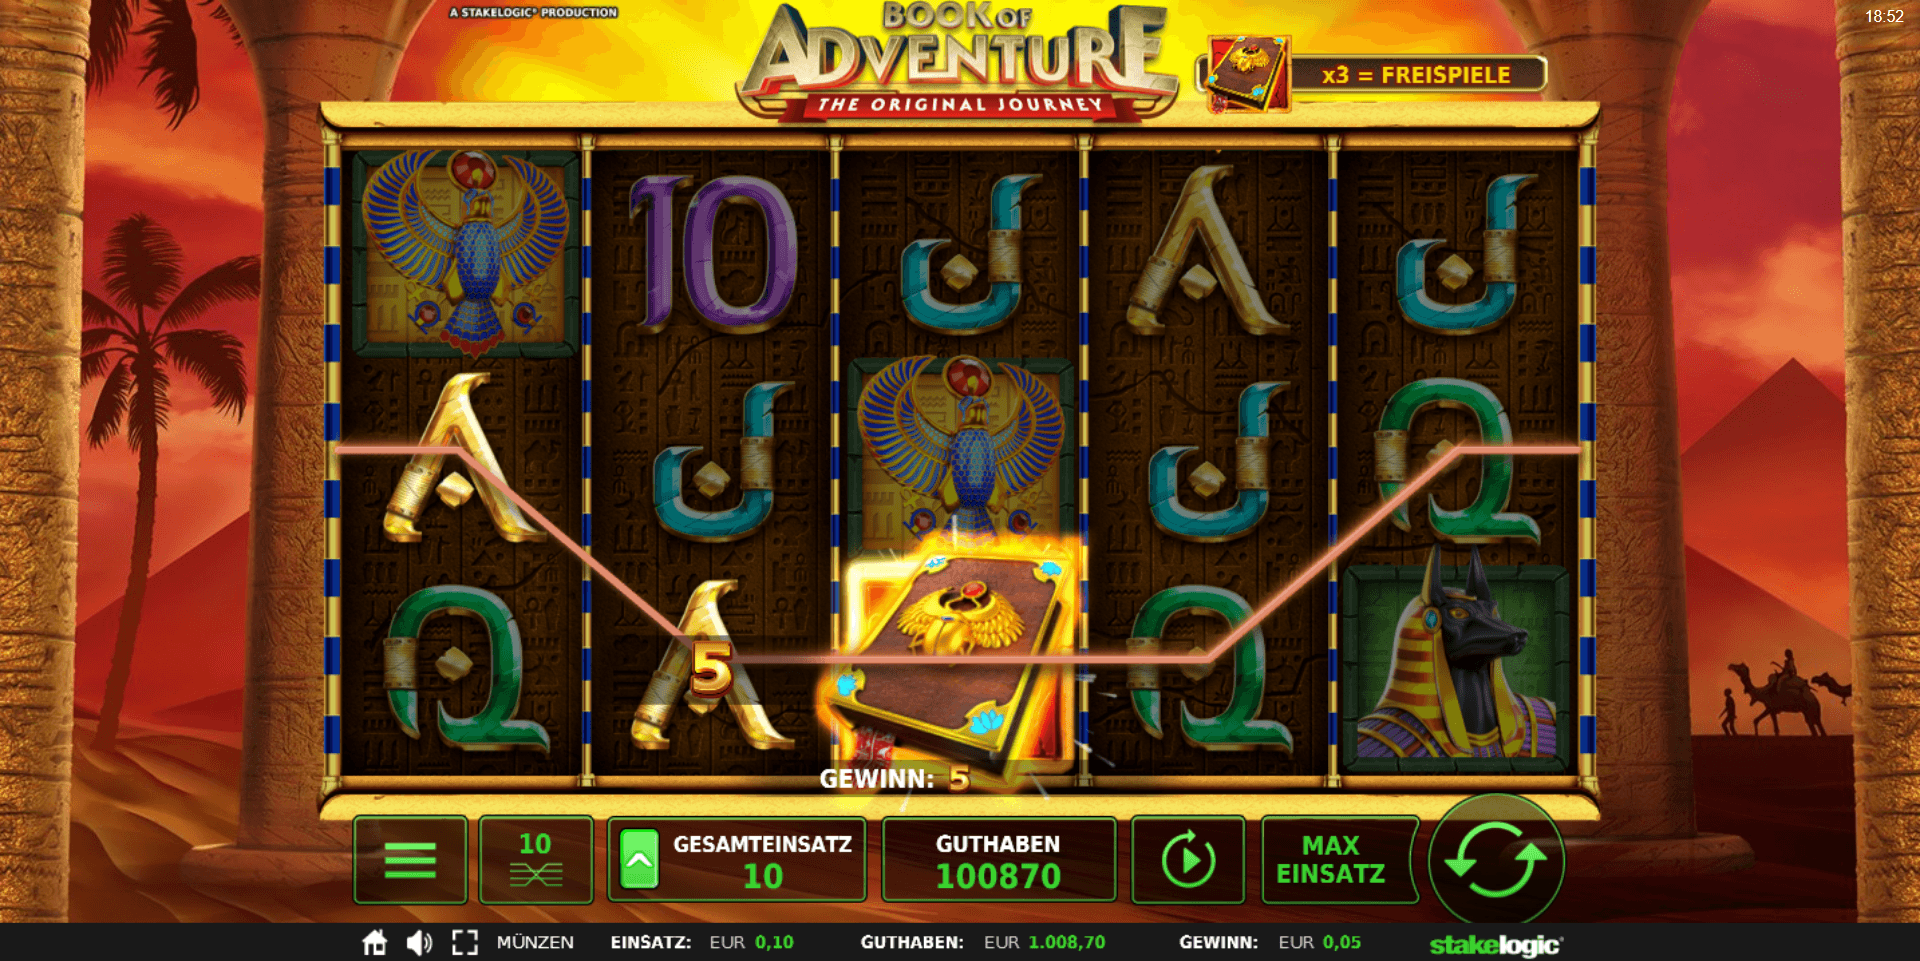 Book of Adventure online